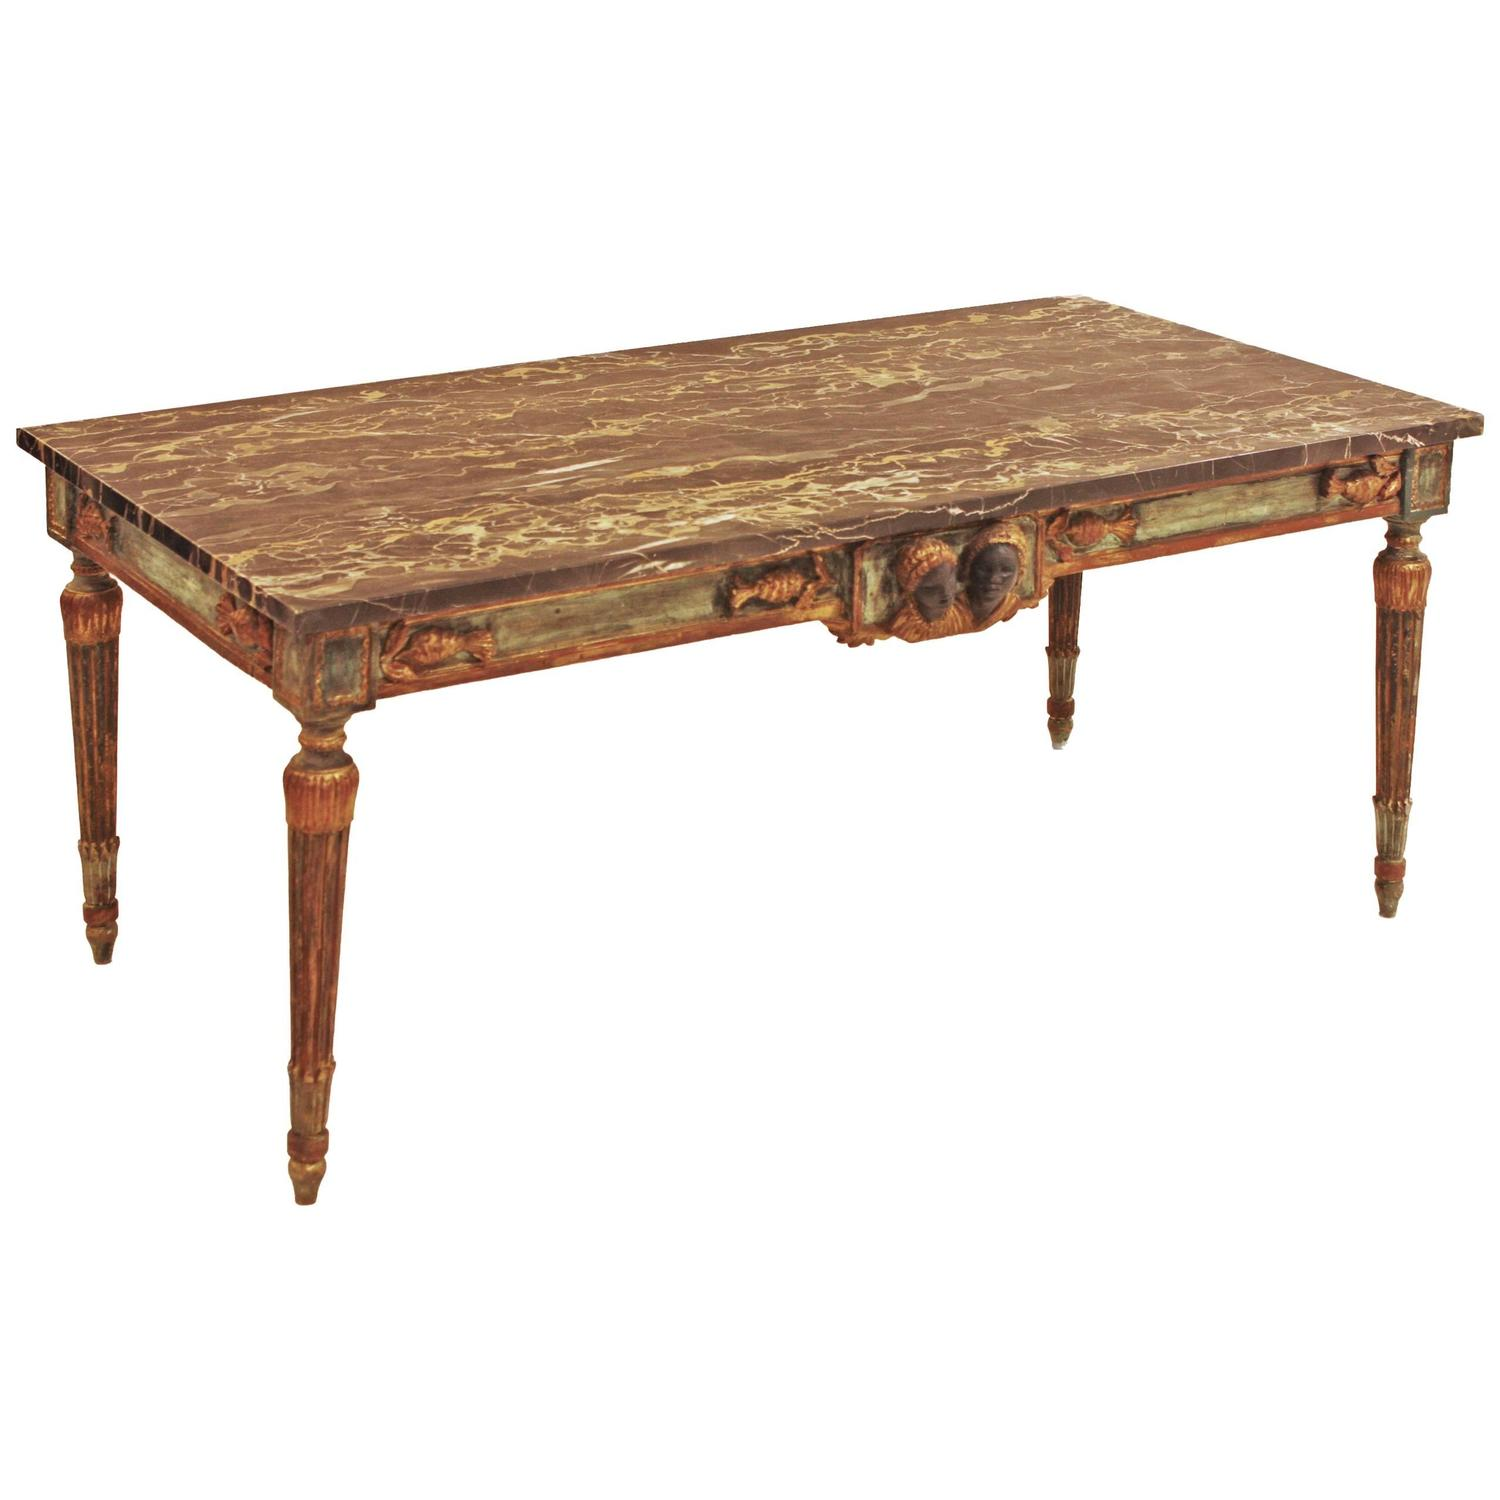 Marble Topped Gilt Coffee Table C 1920: French Painted And Parcel Gilt Neoclassical Style Marble